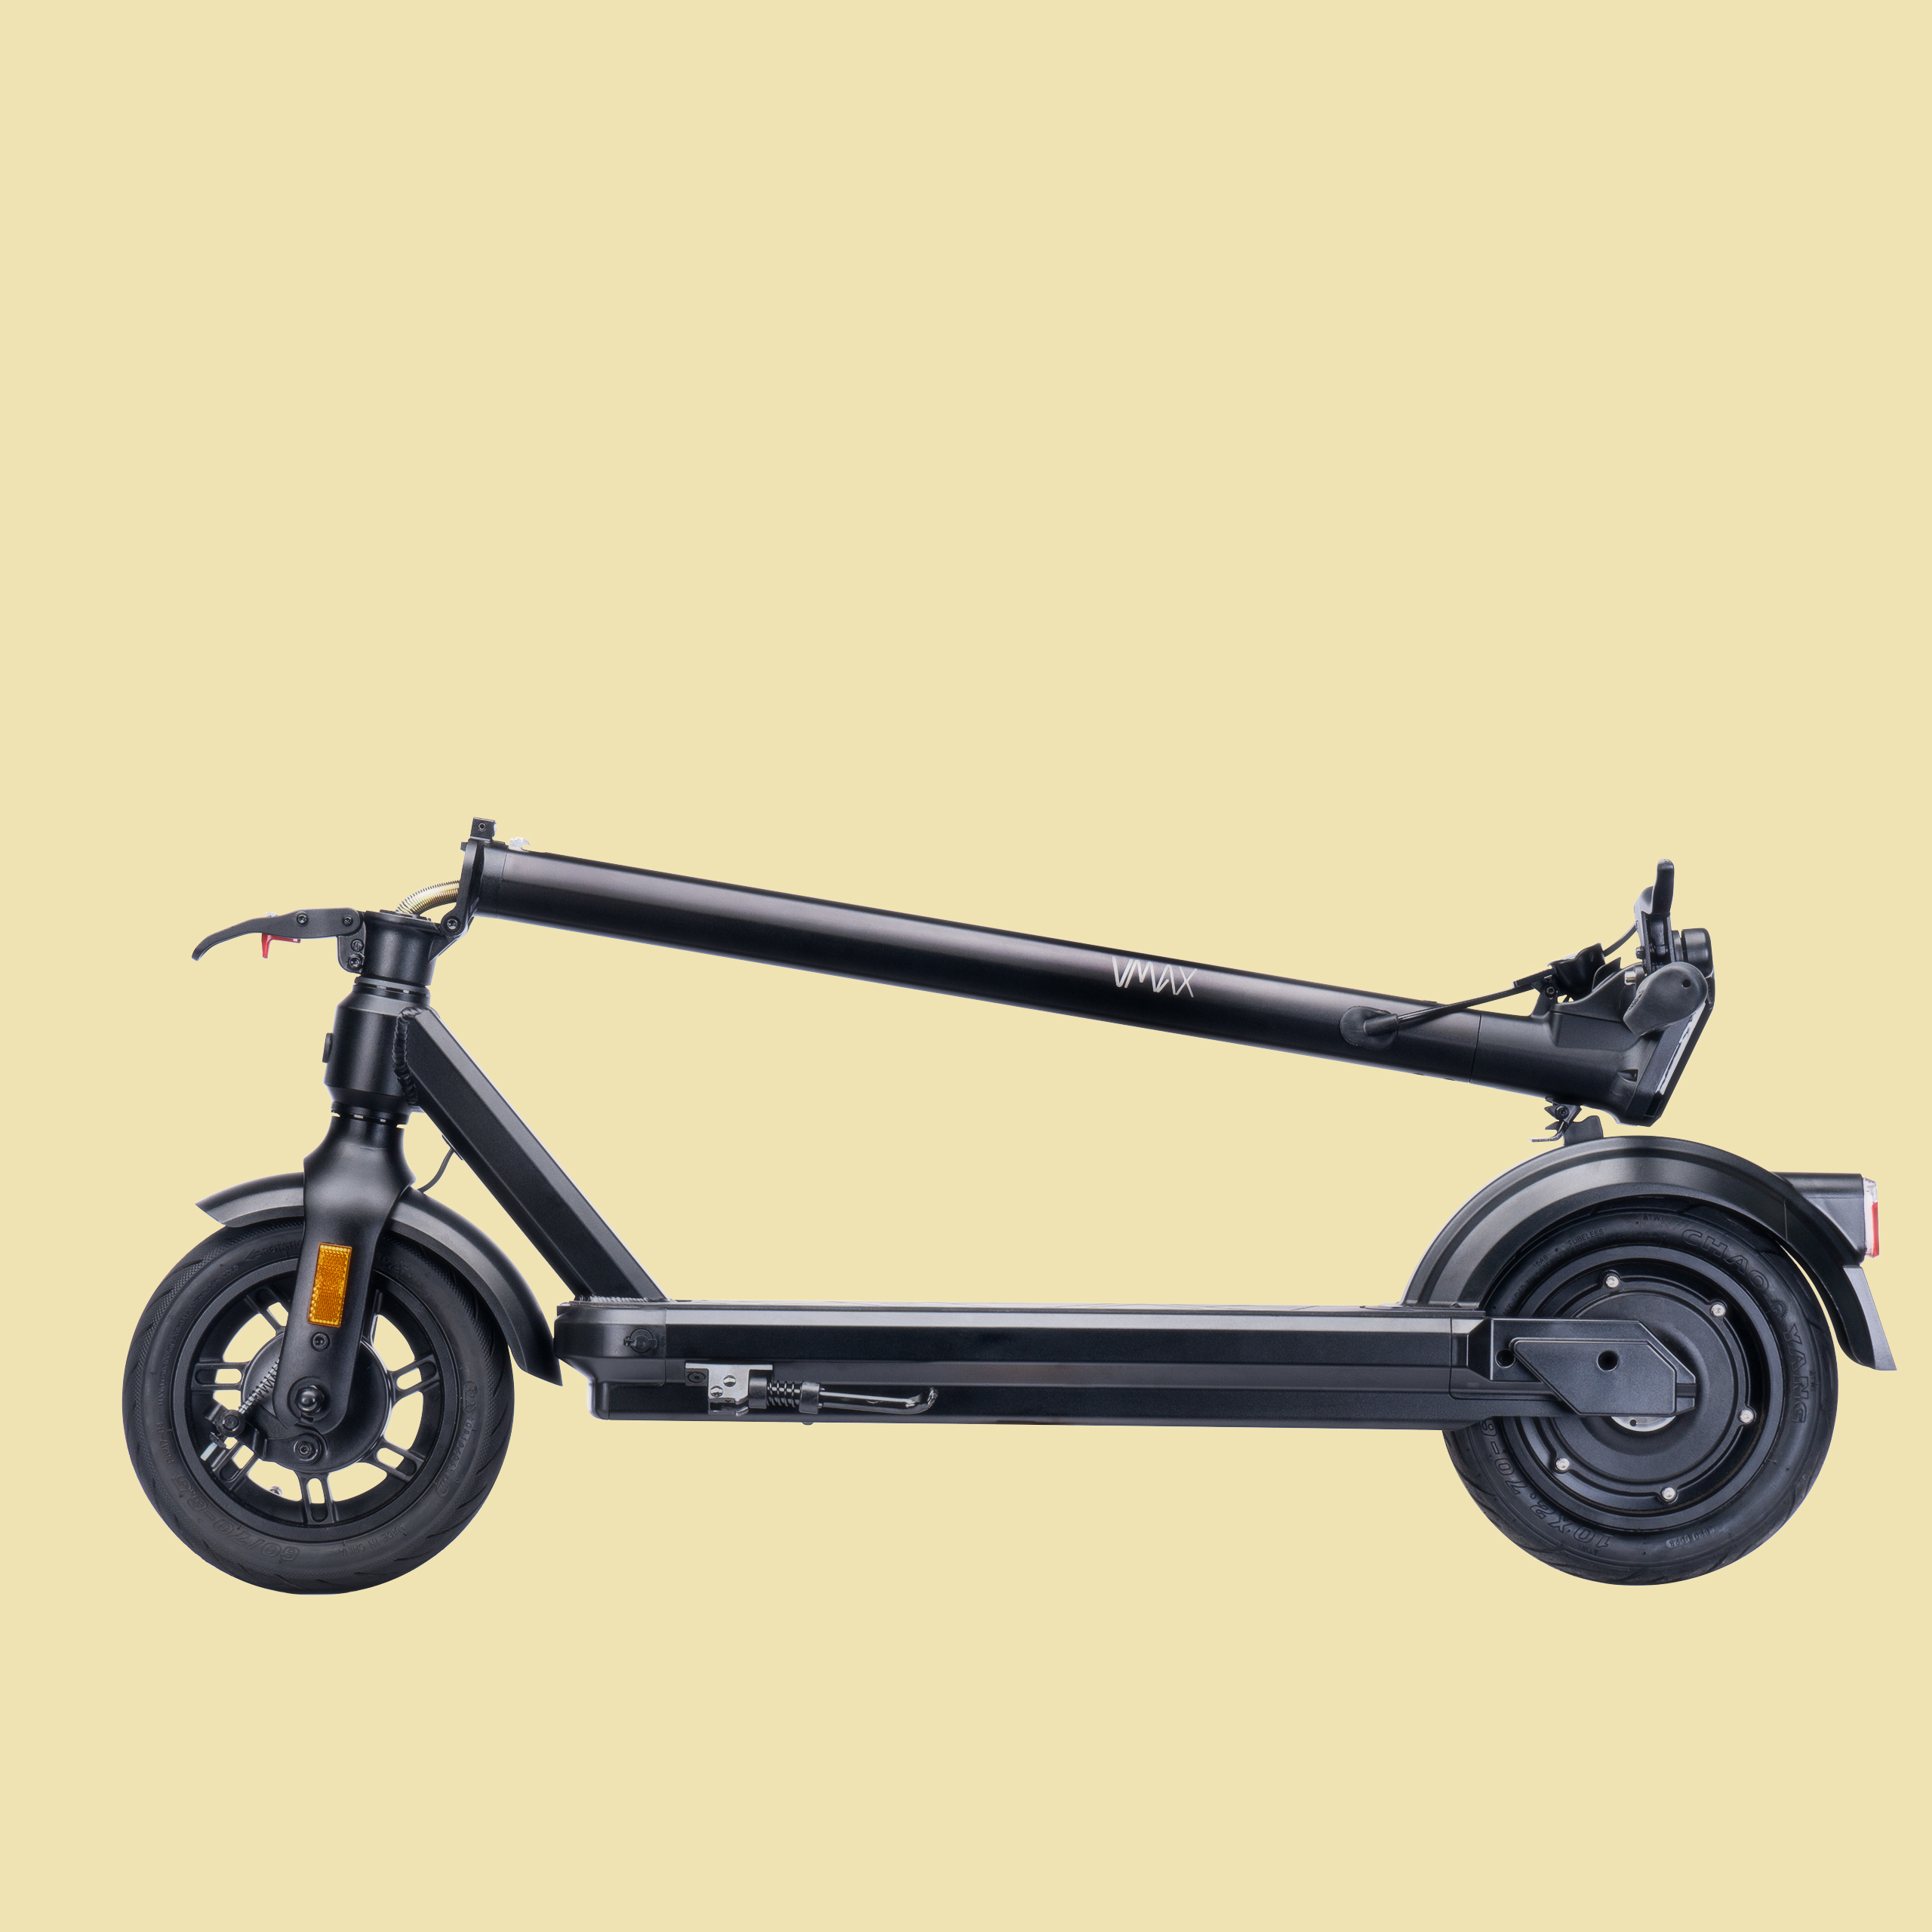 E-Scooter VMAX VX2 folded up